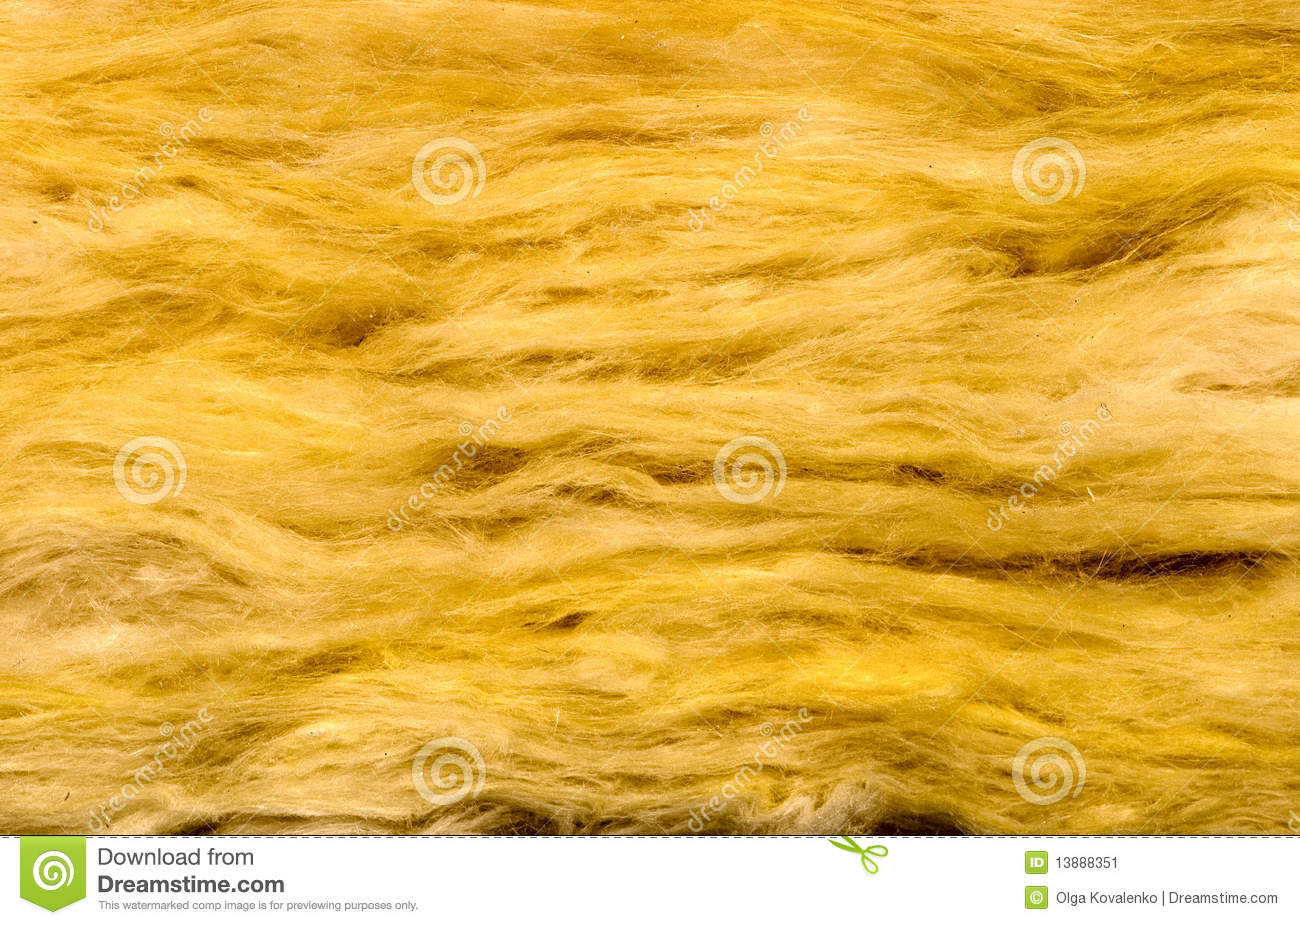 Material of glass wool insulation stock image image of for Fiberglass wool insulation